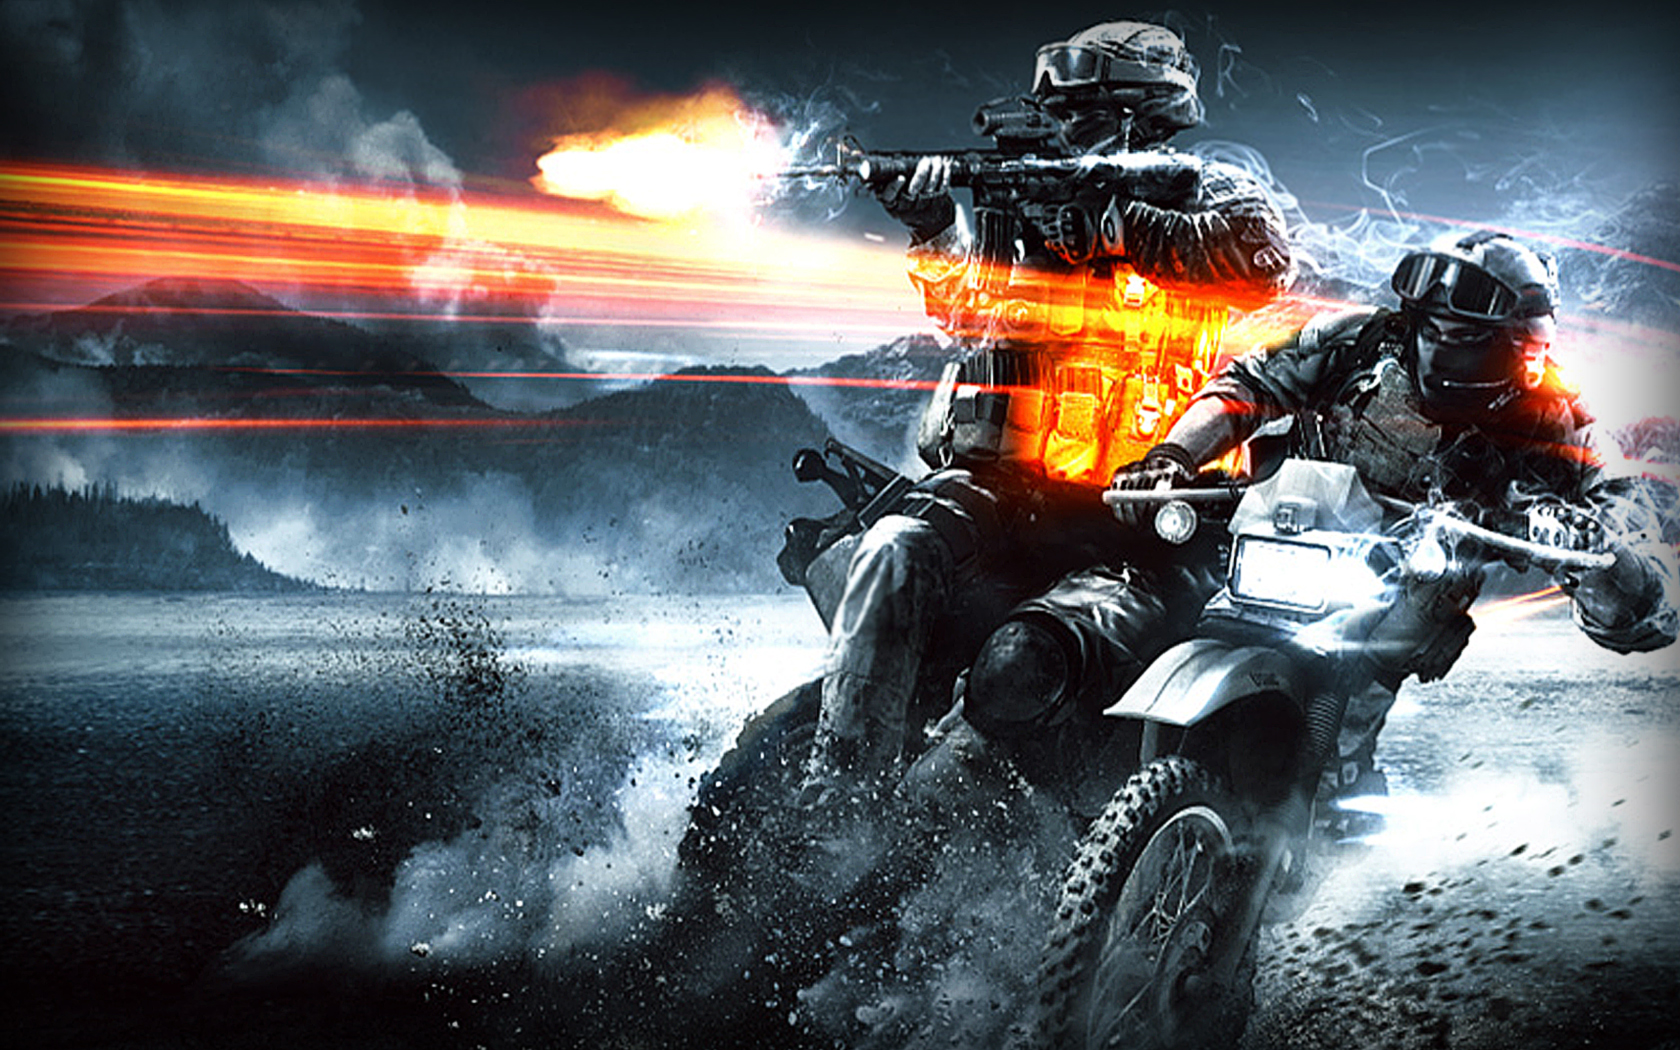 End Game incluirá motos dentro de Battlefield 3 [DLC]